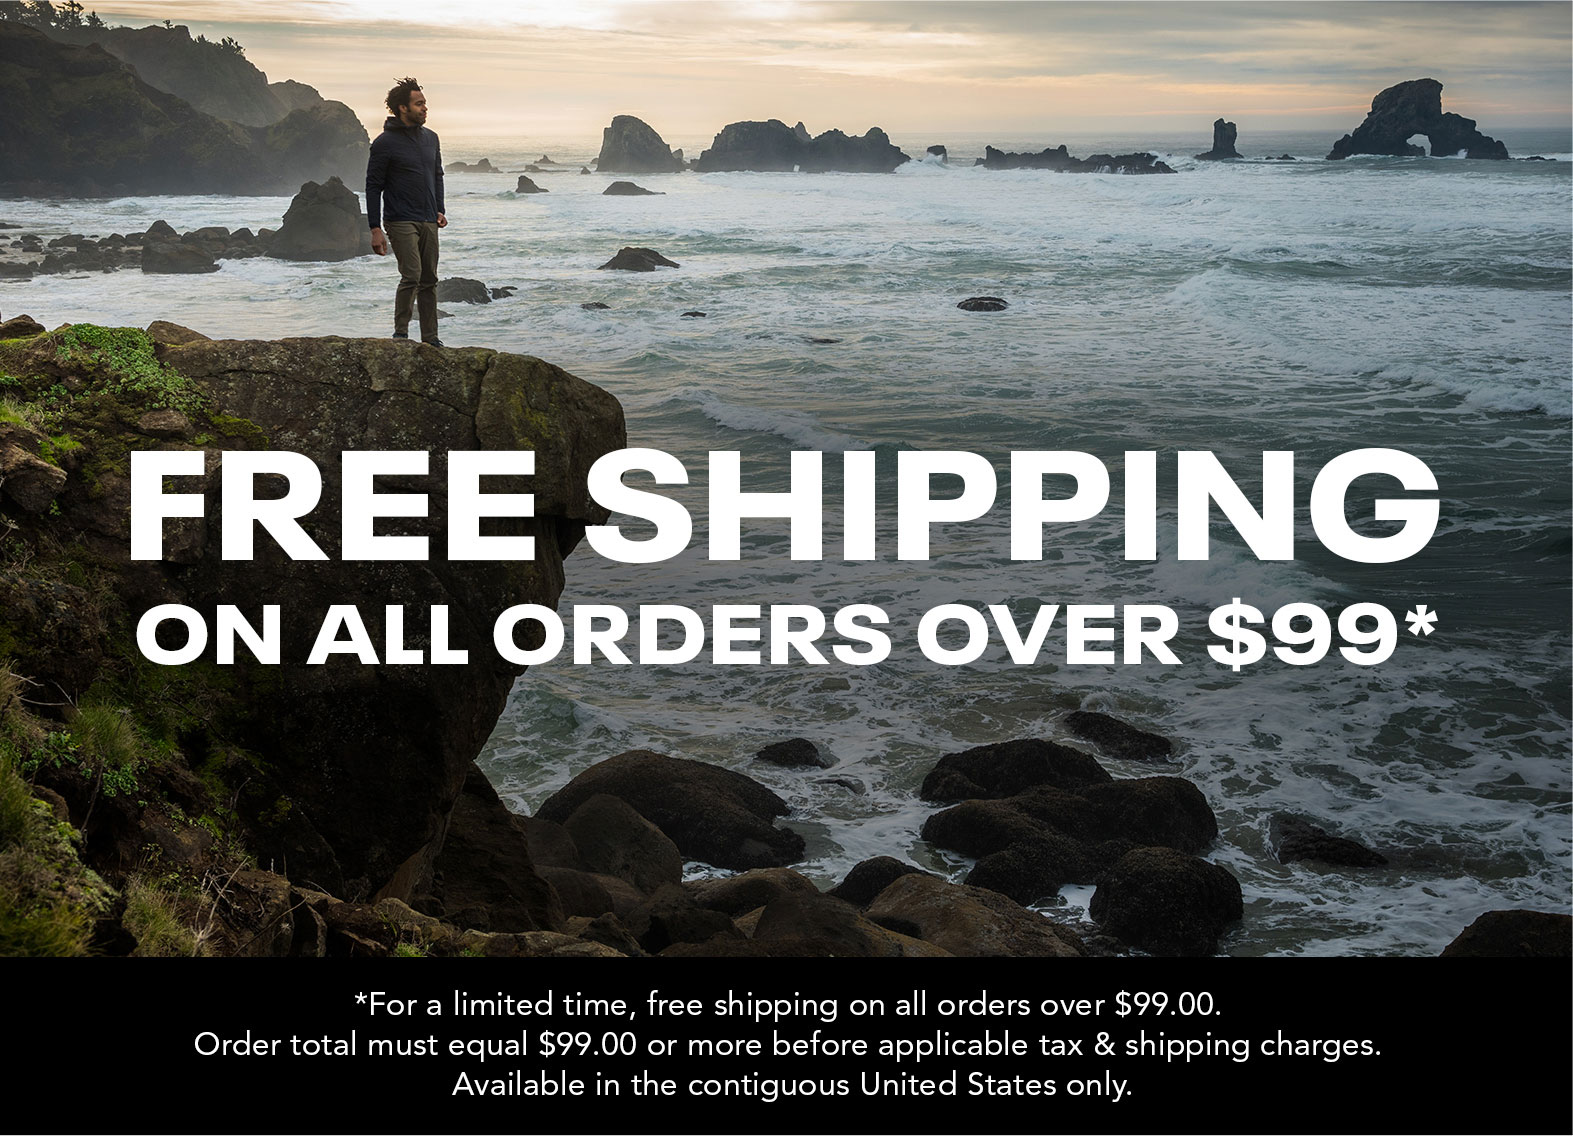 Free Shipping on all orders over $99*